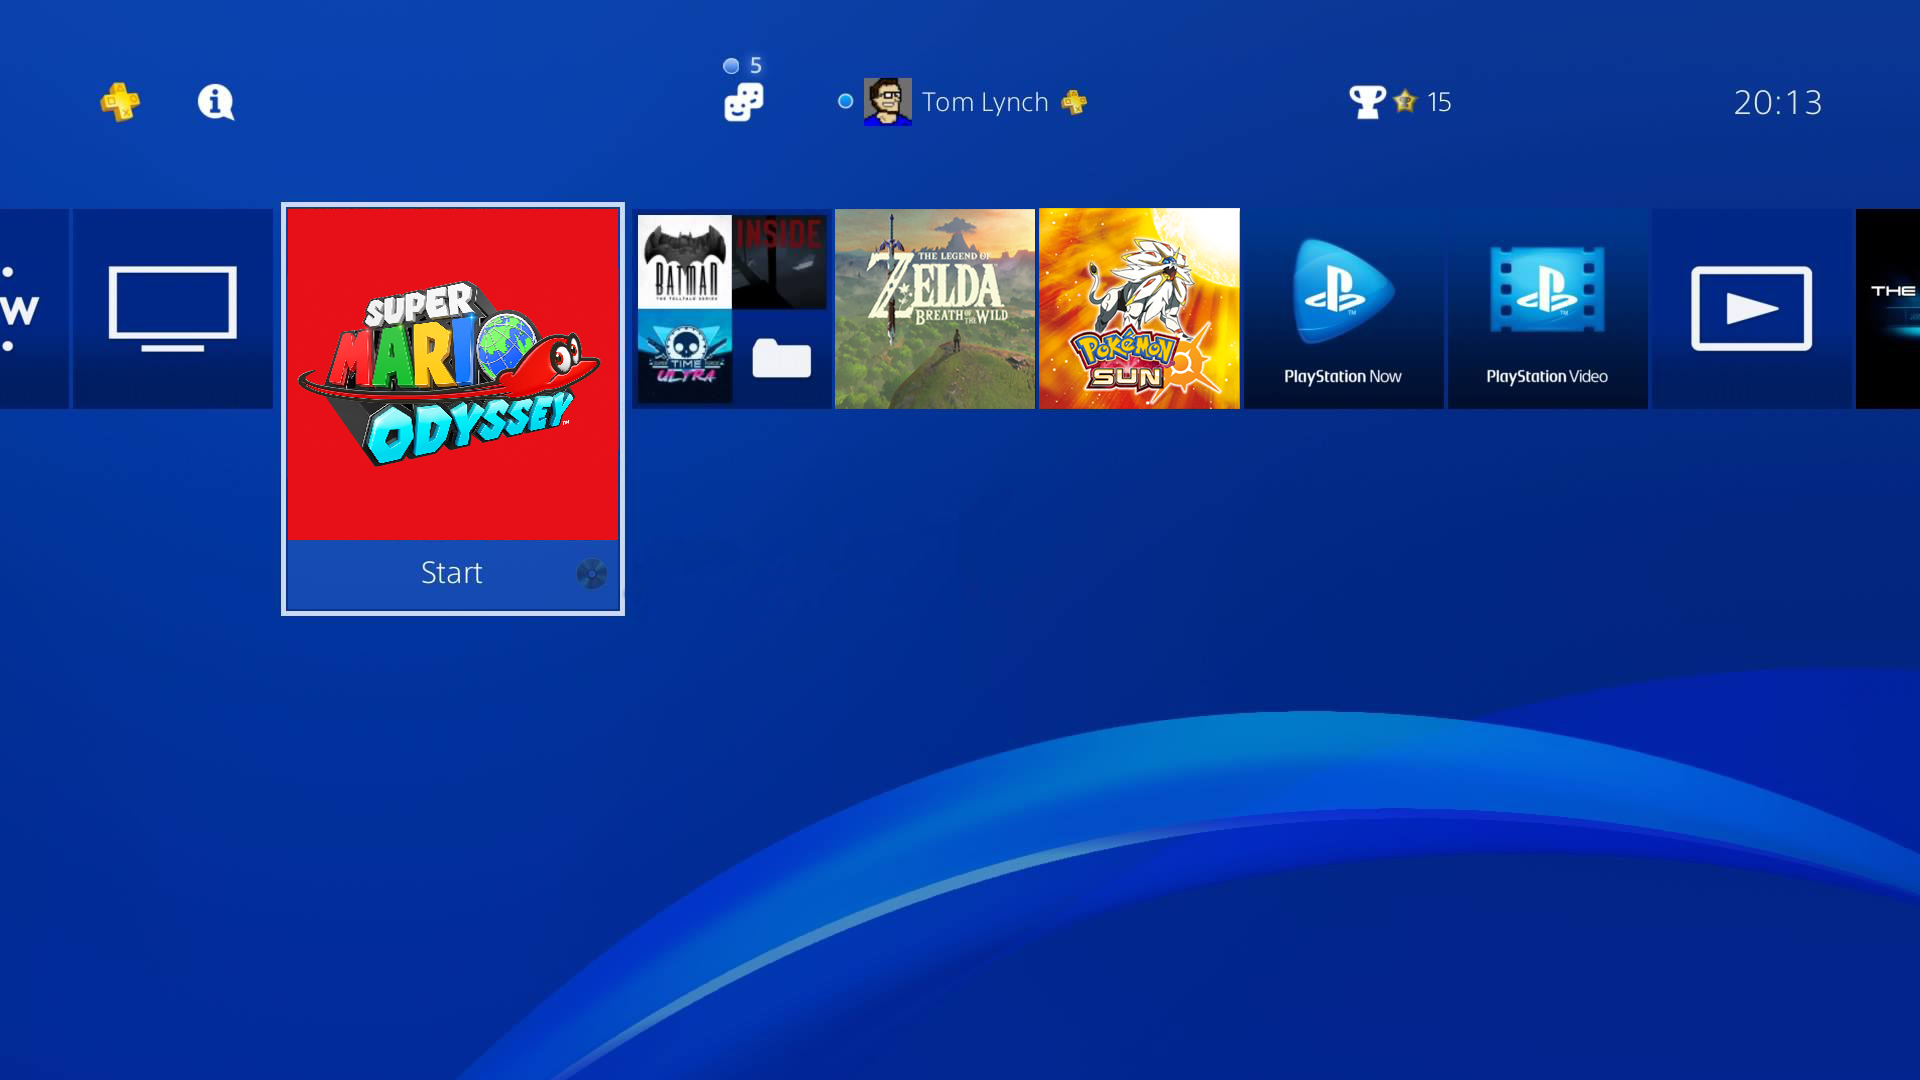 ps4, nintendo games, switch